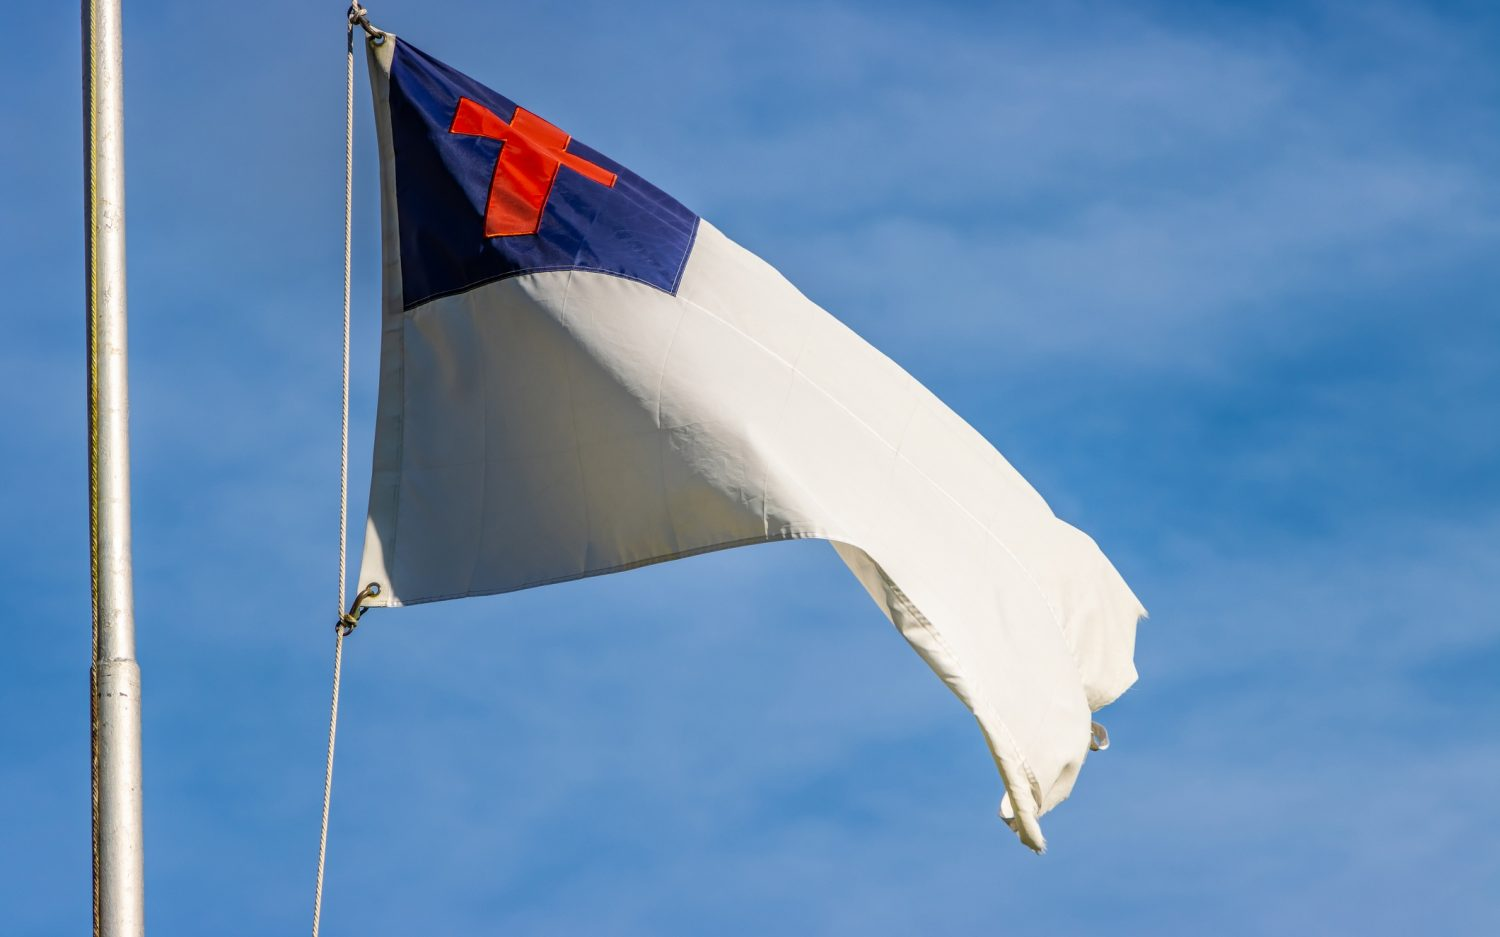 Flag flap ends up in Supreme Court